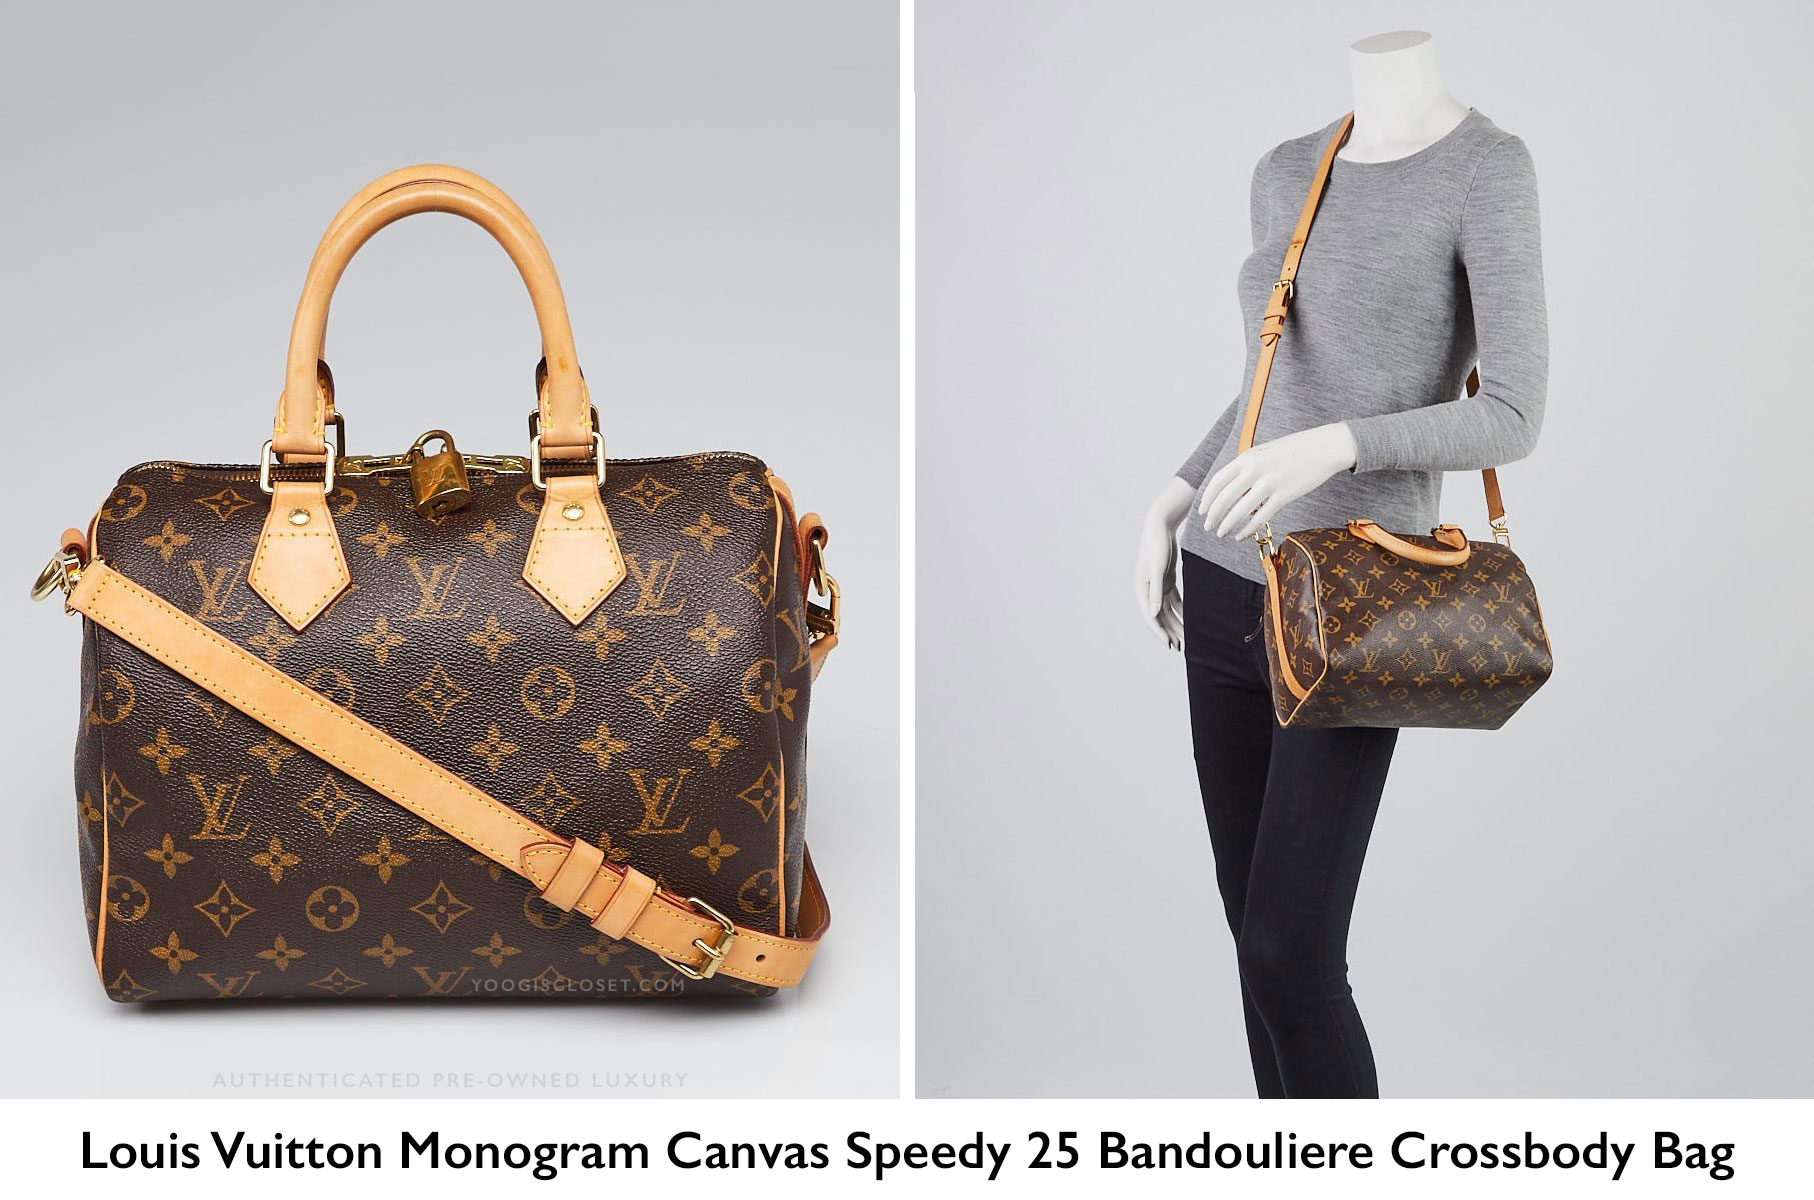 ca585325a8b5 Authentic Louis Vuitton Monogram Canvas Speedy Bandouliere 25 Crossbody Bag